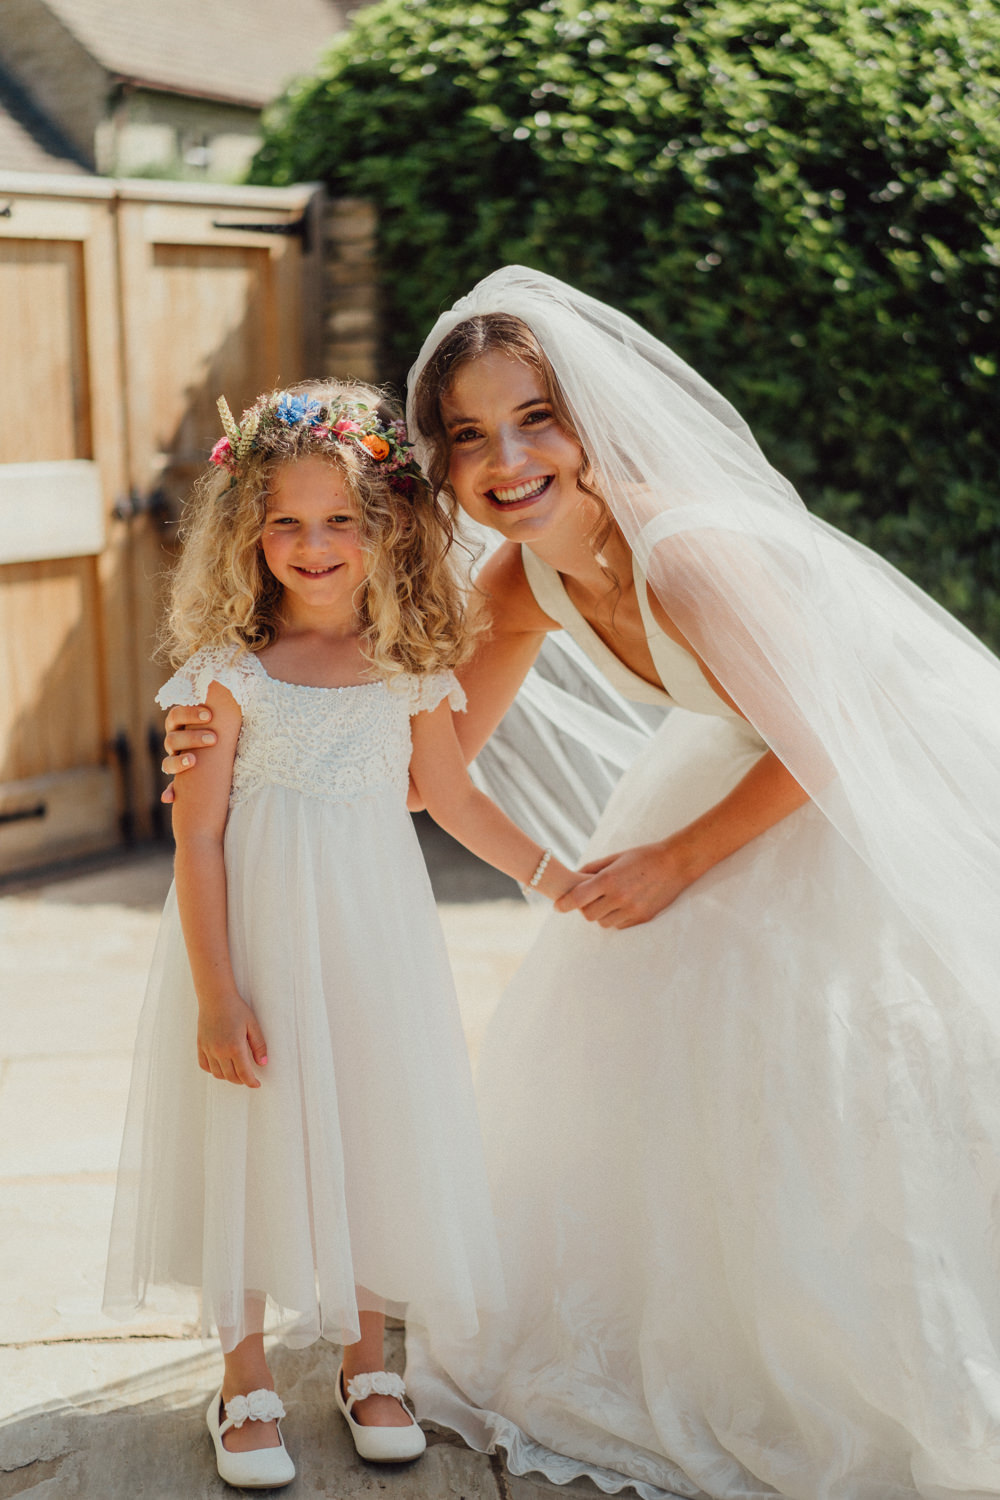 Flower Girl Dress Priors Court Barn Wedding Emily & Steve Photography